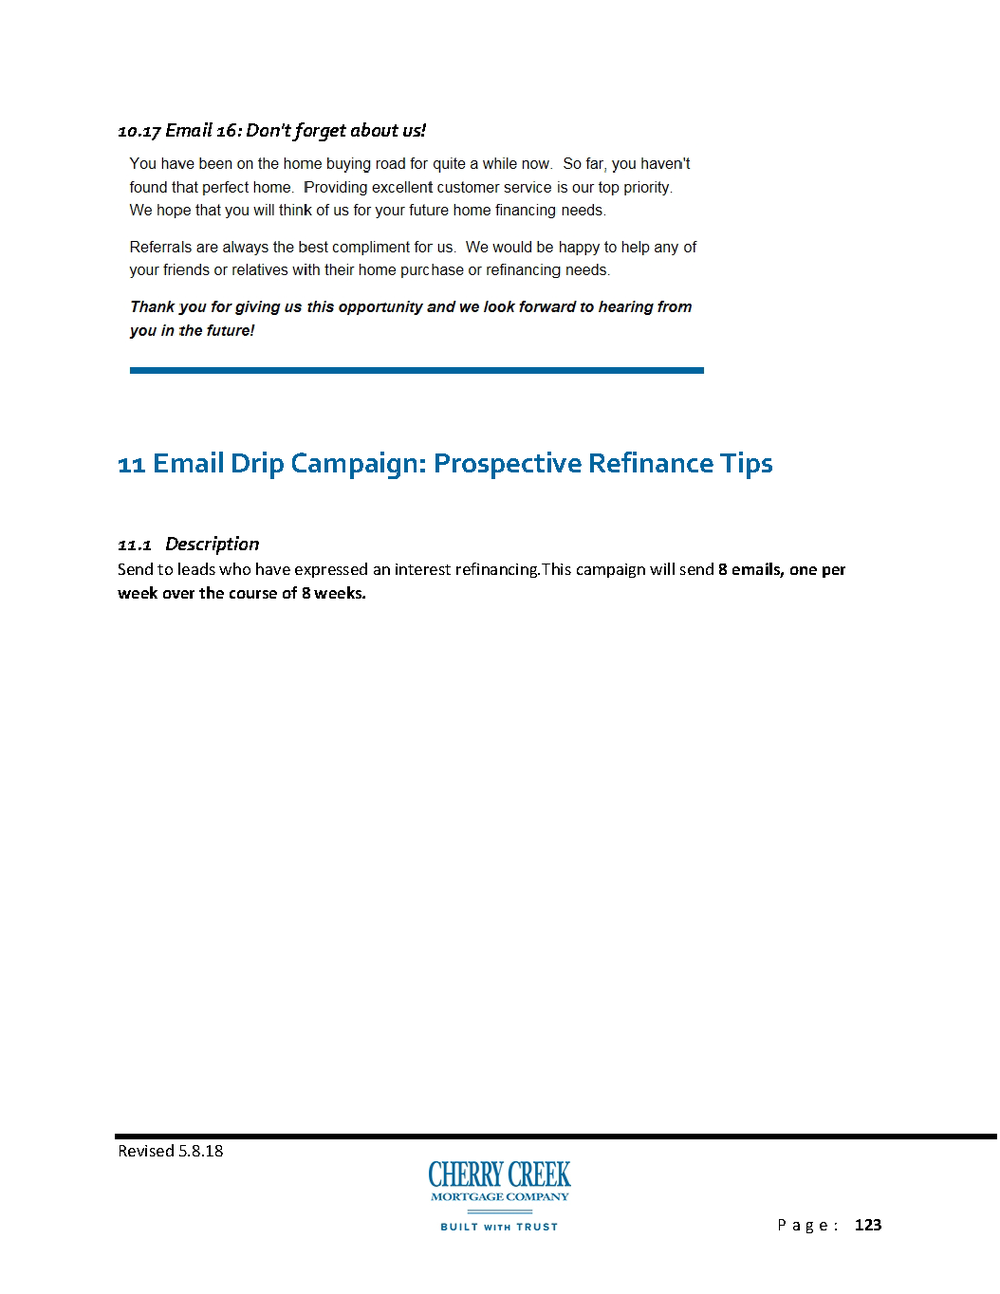 Jungo_Email_Drip_Campaigns-Consumers_D1O6plI_Page_123.png